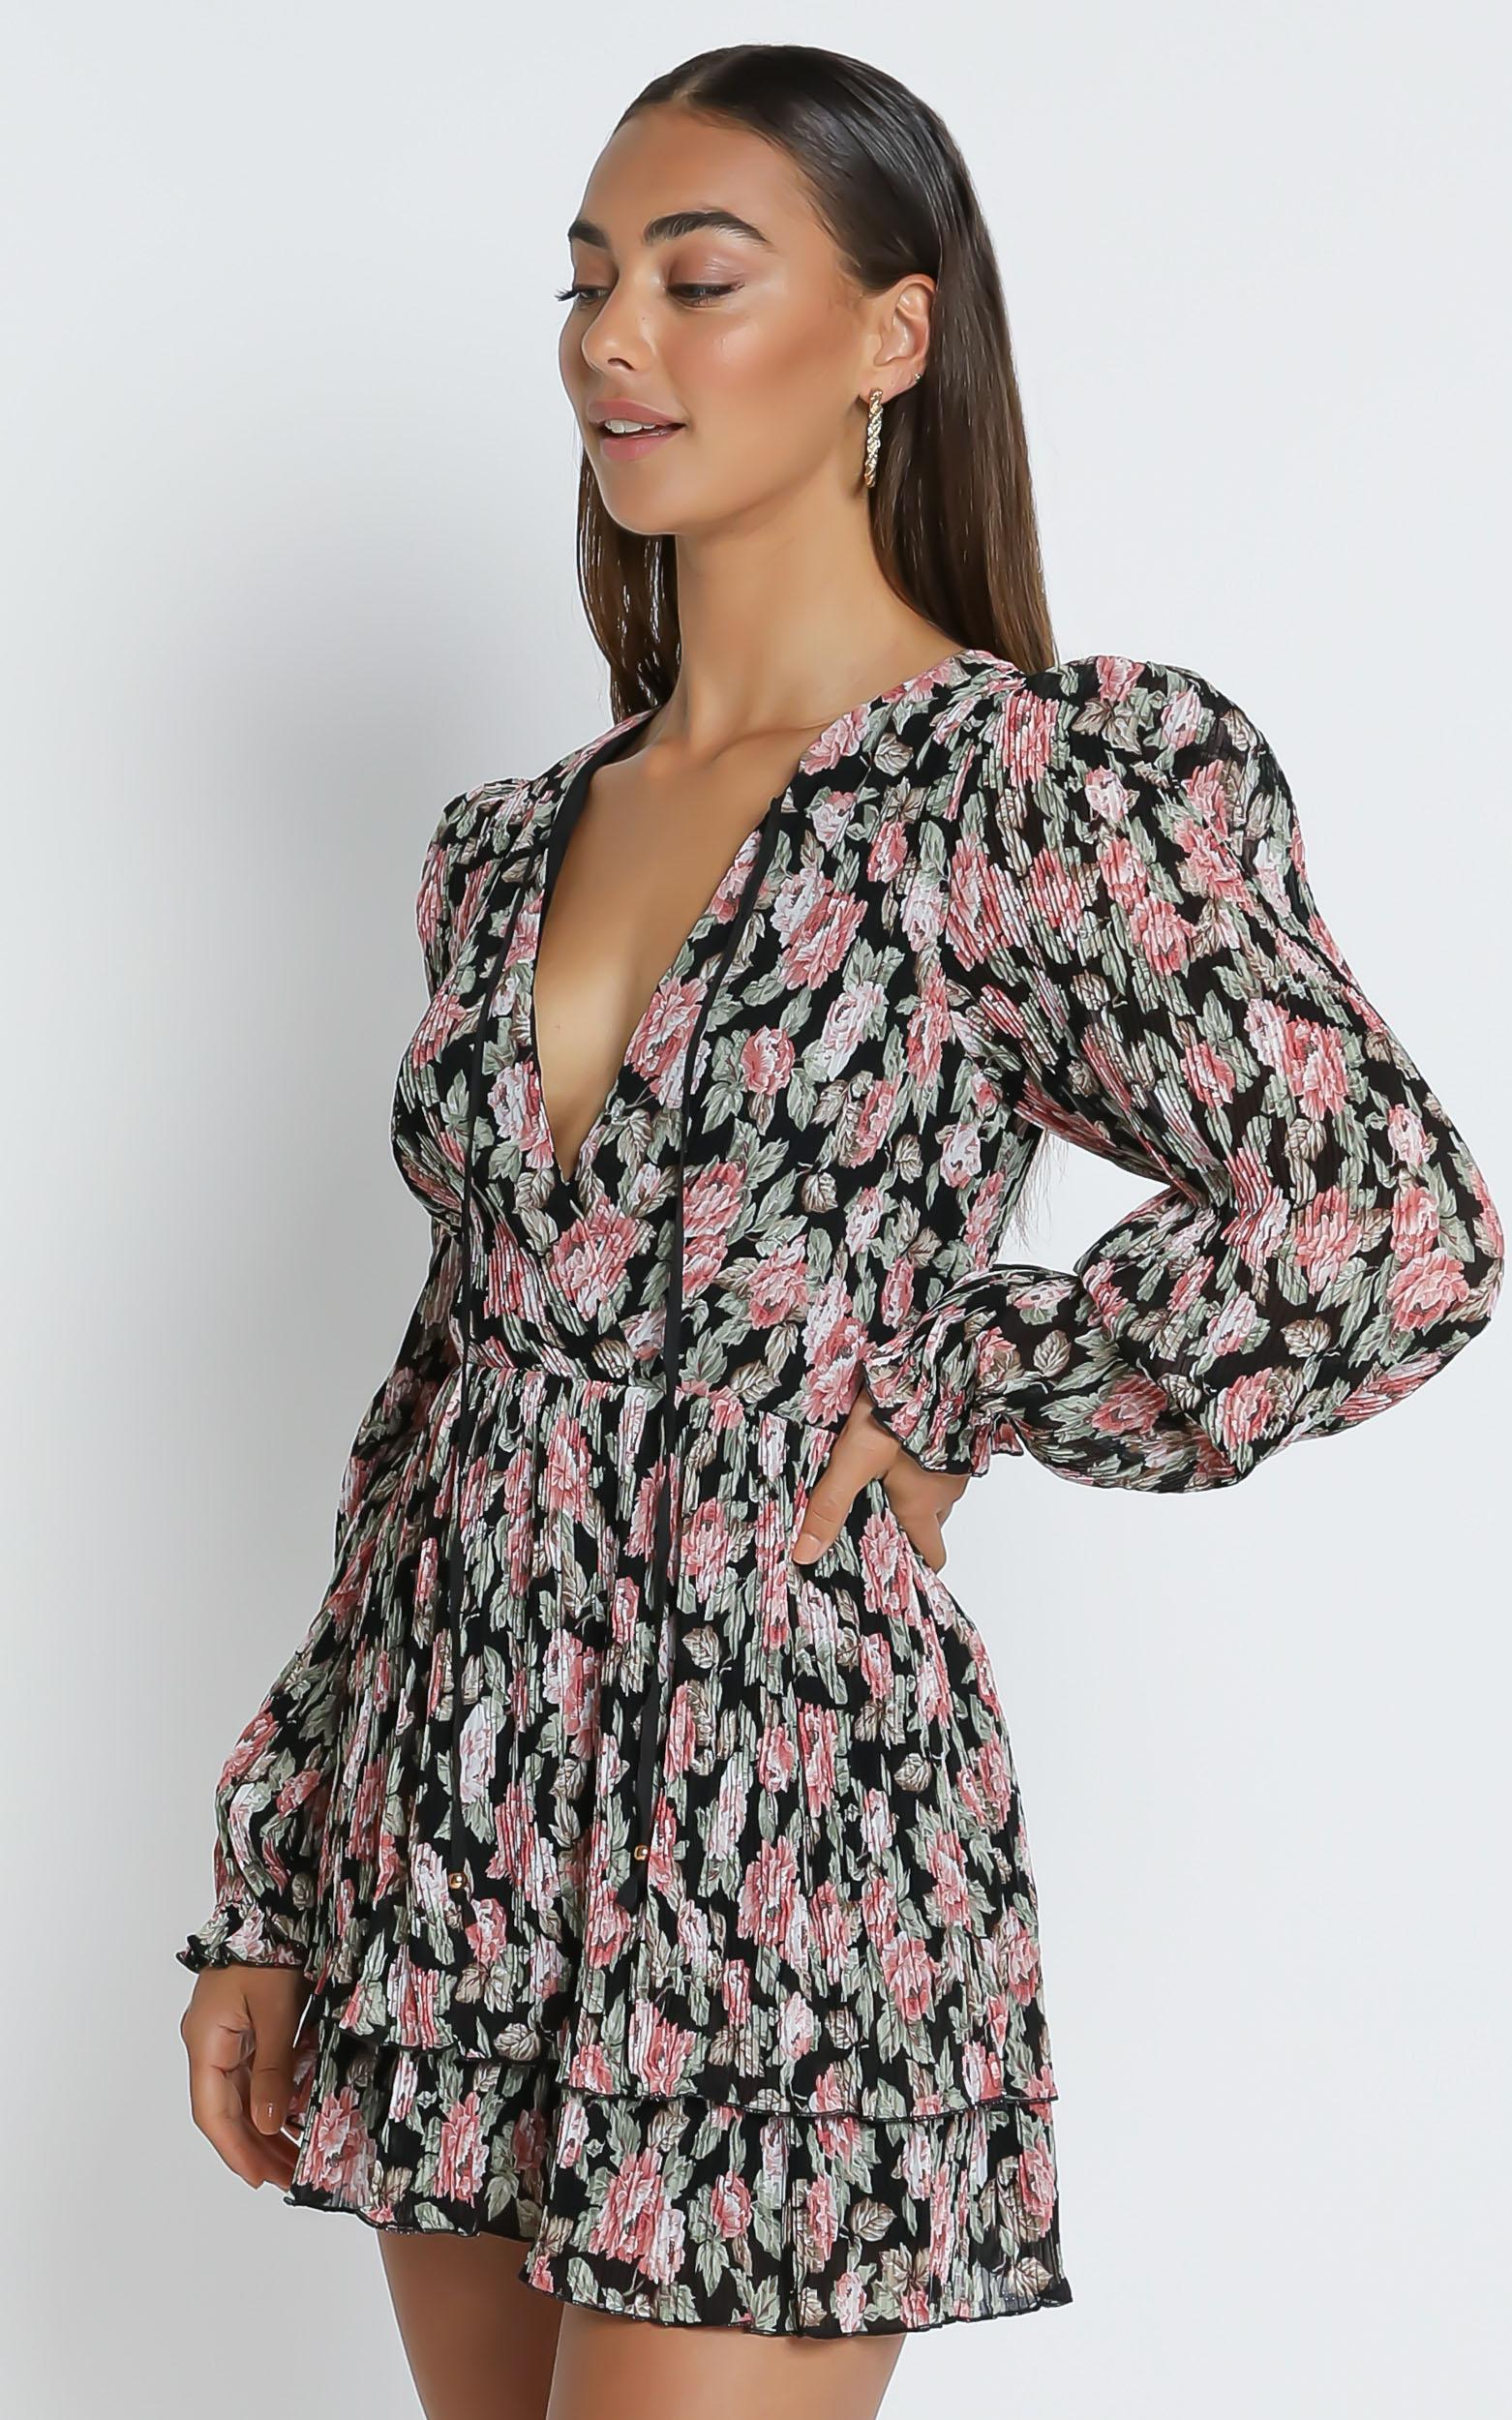 Eloise Long Sleeve Mini Dress in pleated rose floral - 4 (XXS), Pink, hi-res image number null